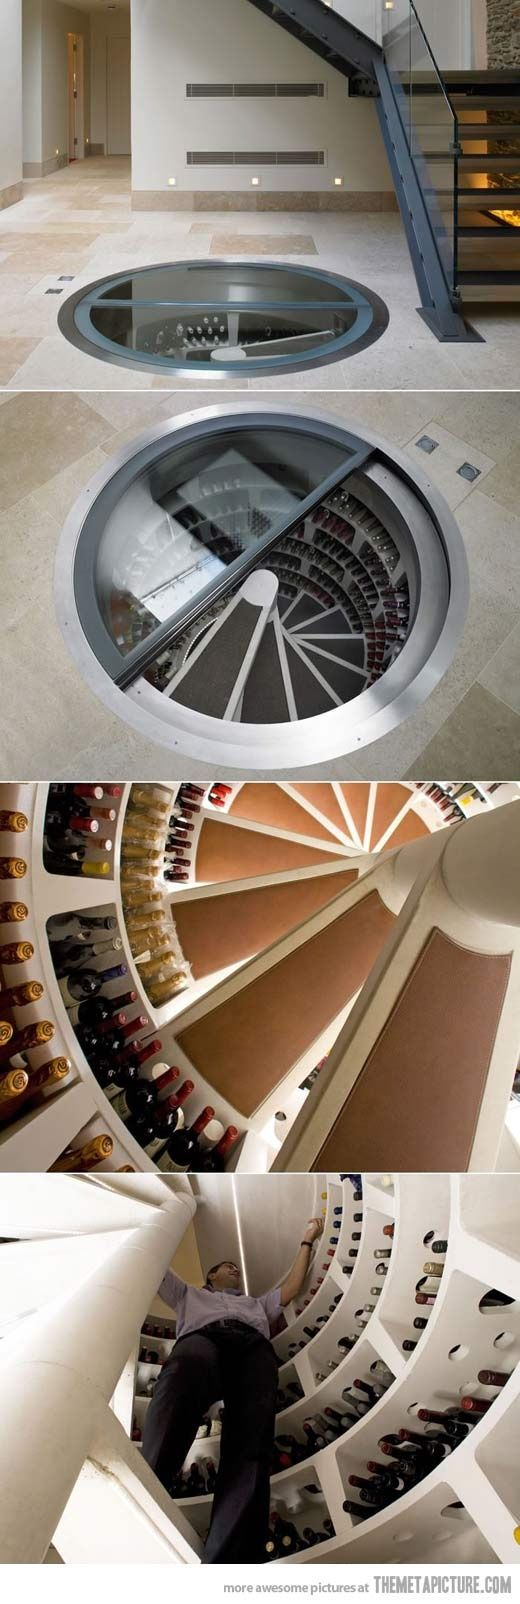 I don't know what was more exciting, when I thought it was shoes, or when I realised it was wine!!